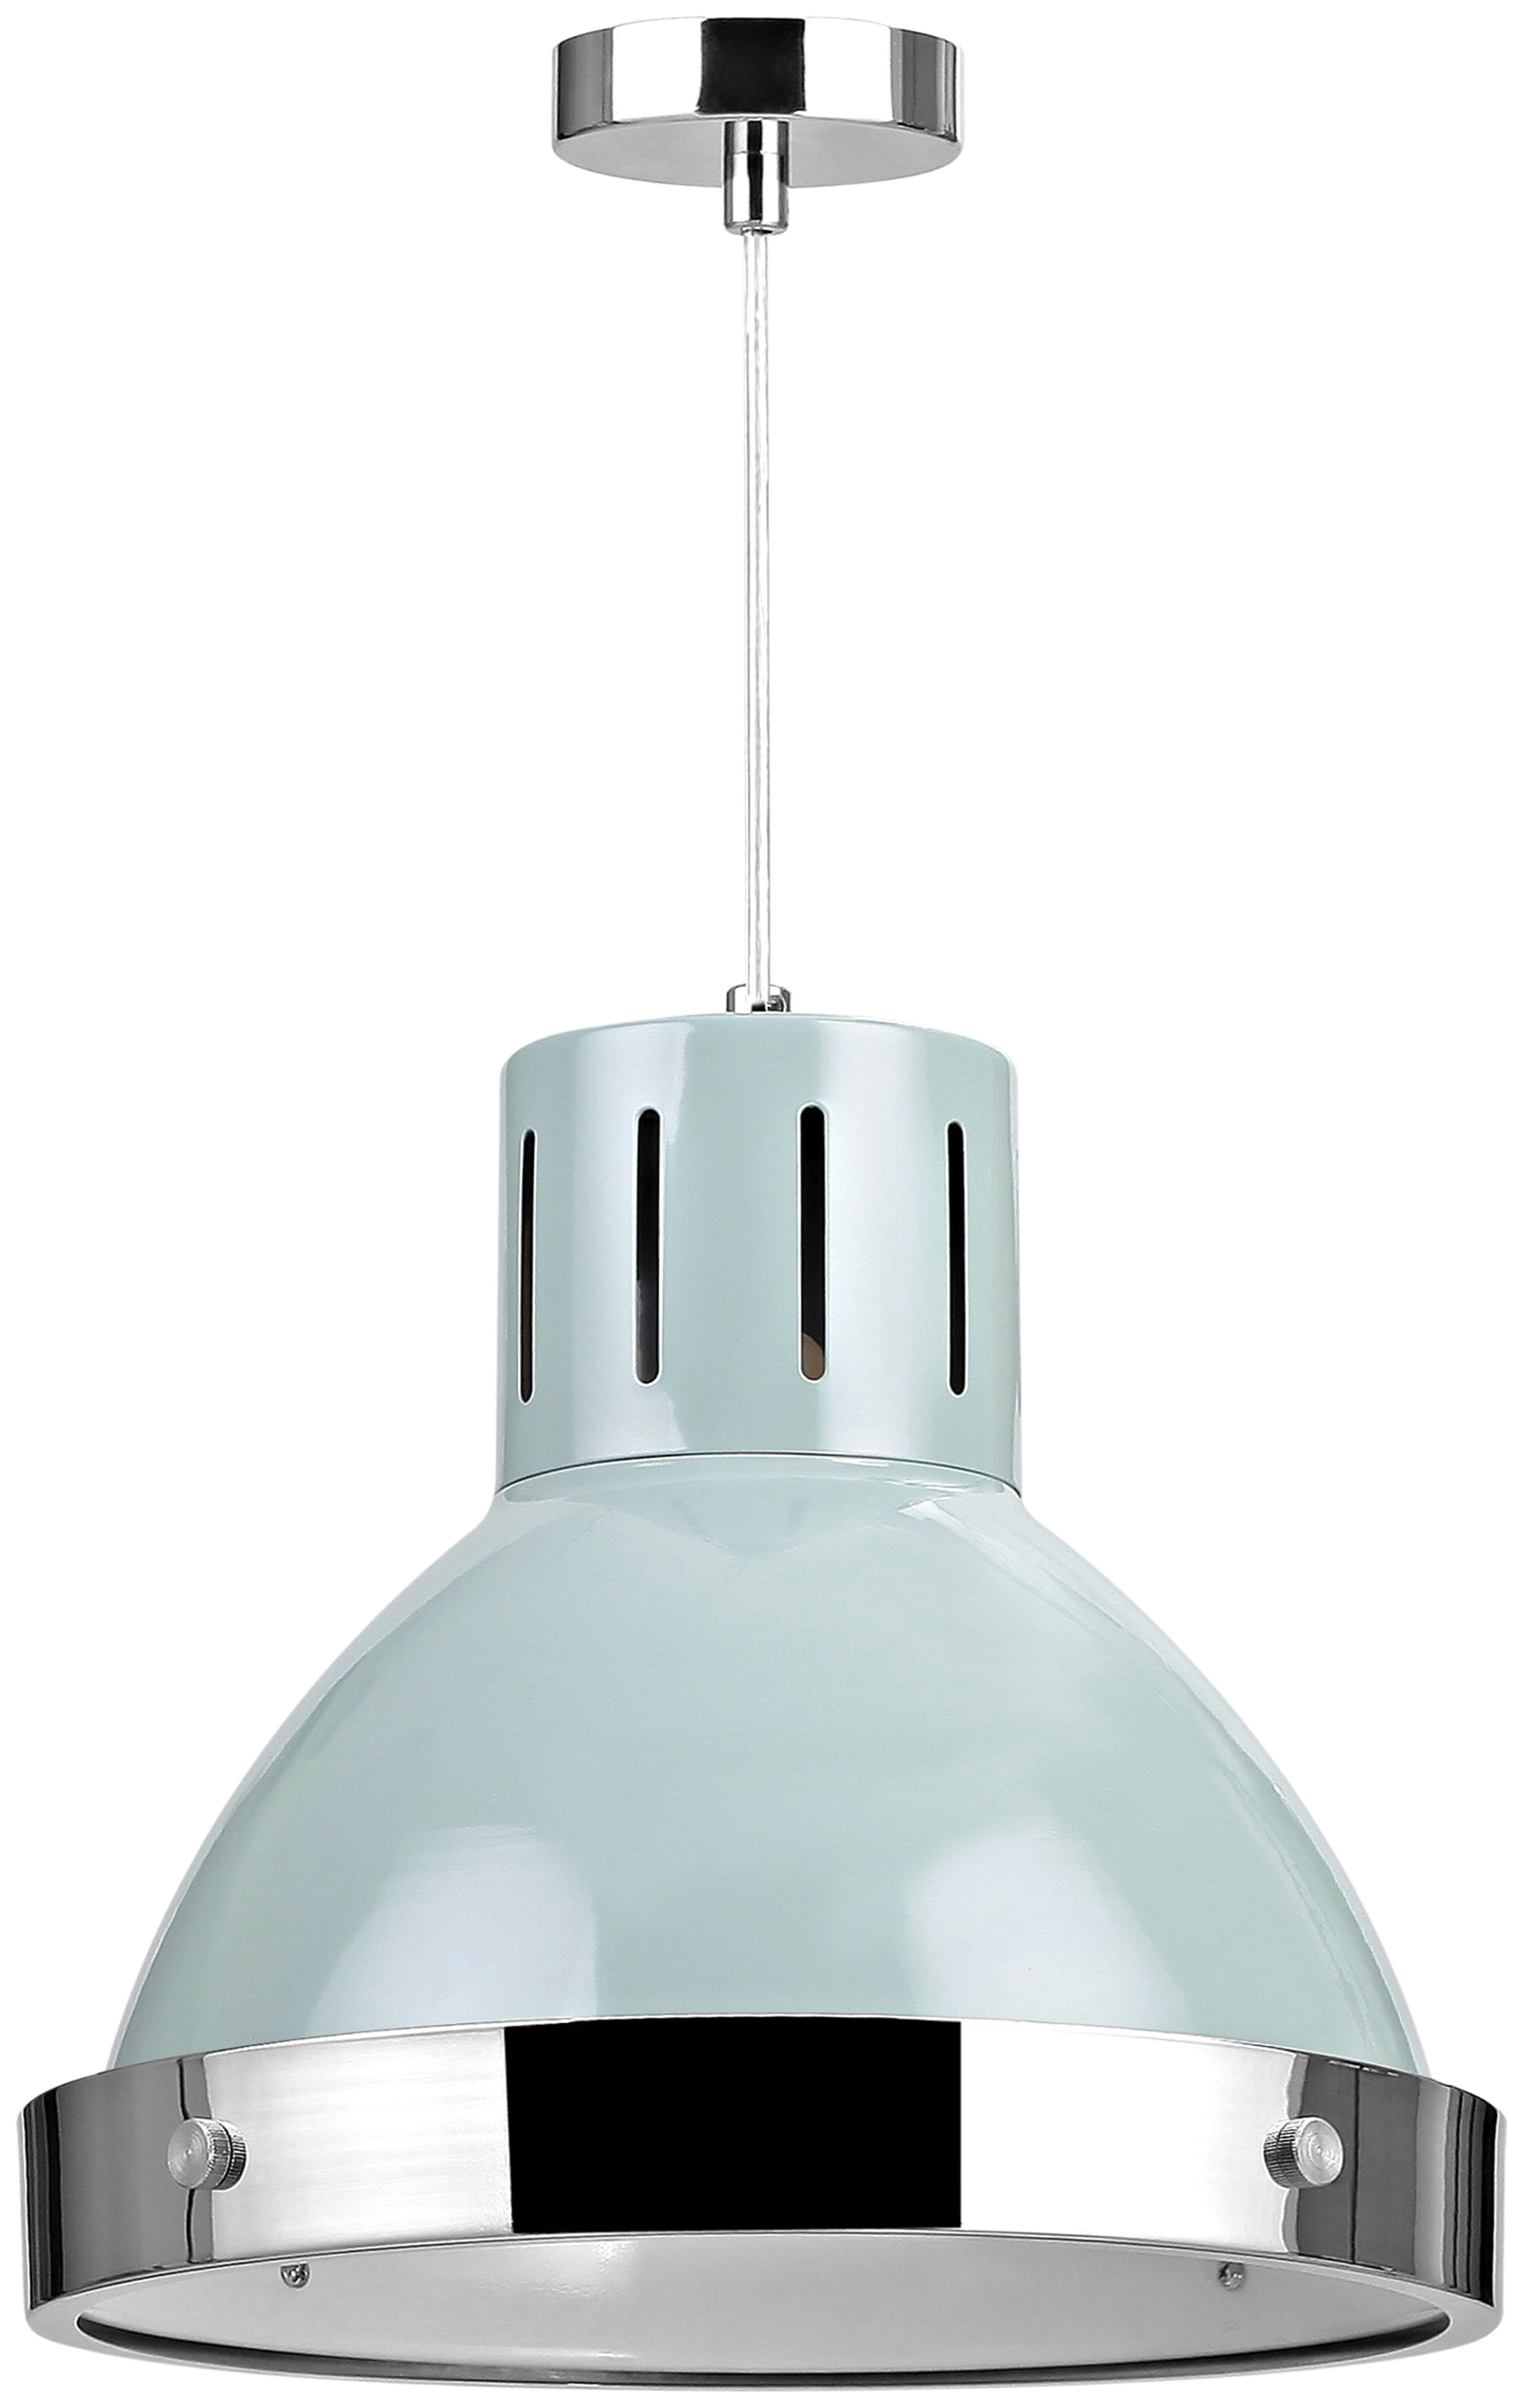 Vermont Dome Pendant Light - Light Blue and Chrome